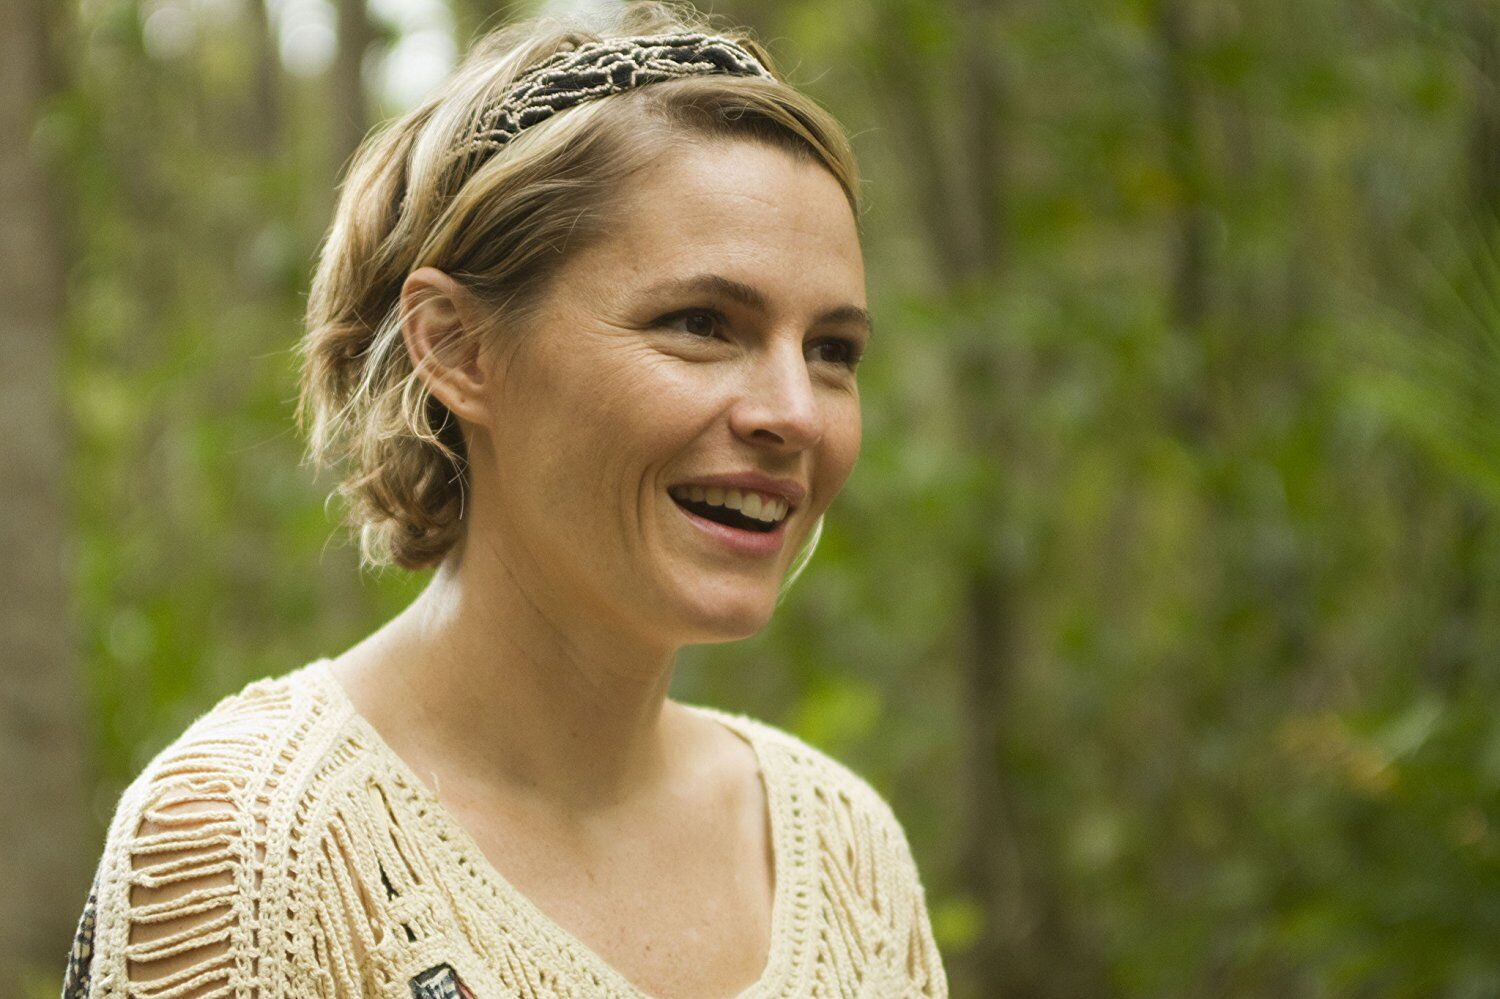 Pet Sematary's Amy Seimetz snags deal with FX Productions